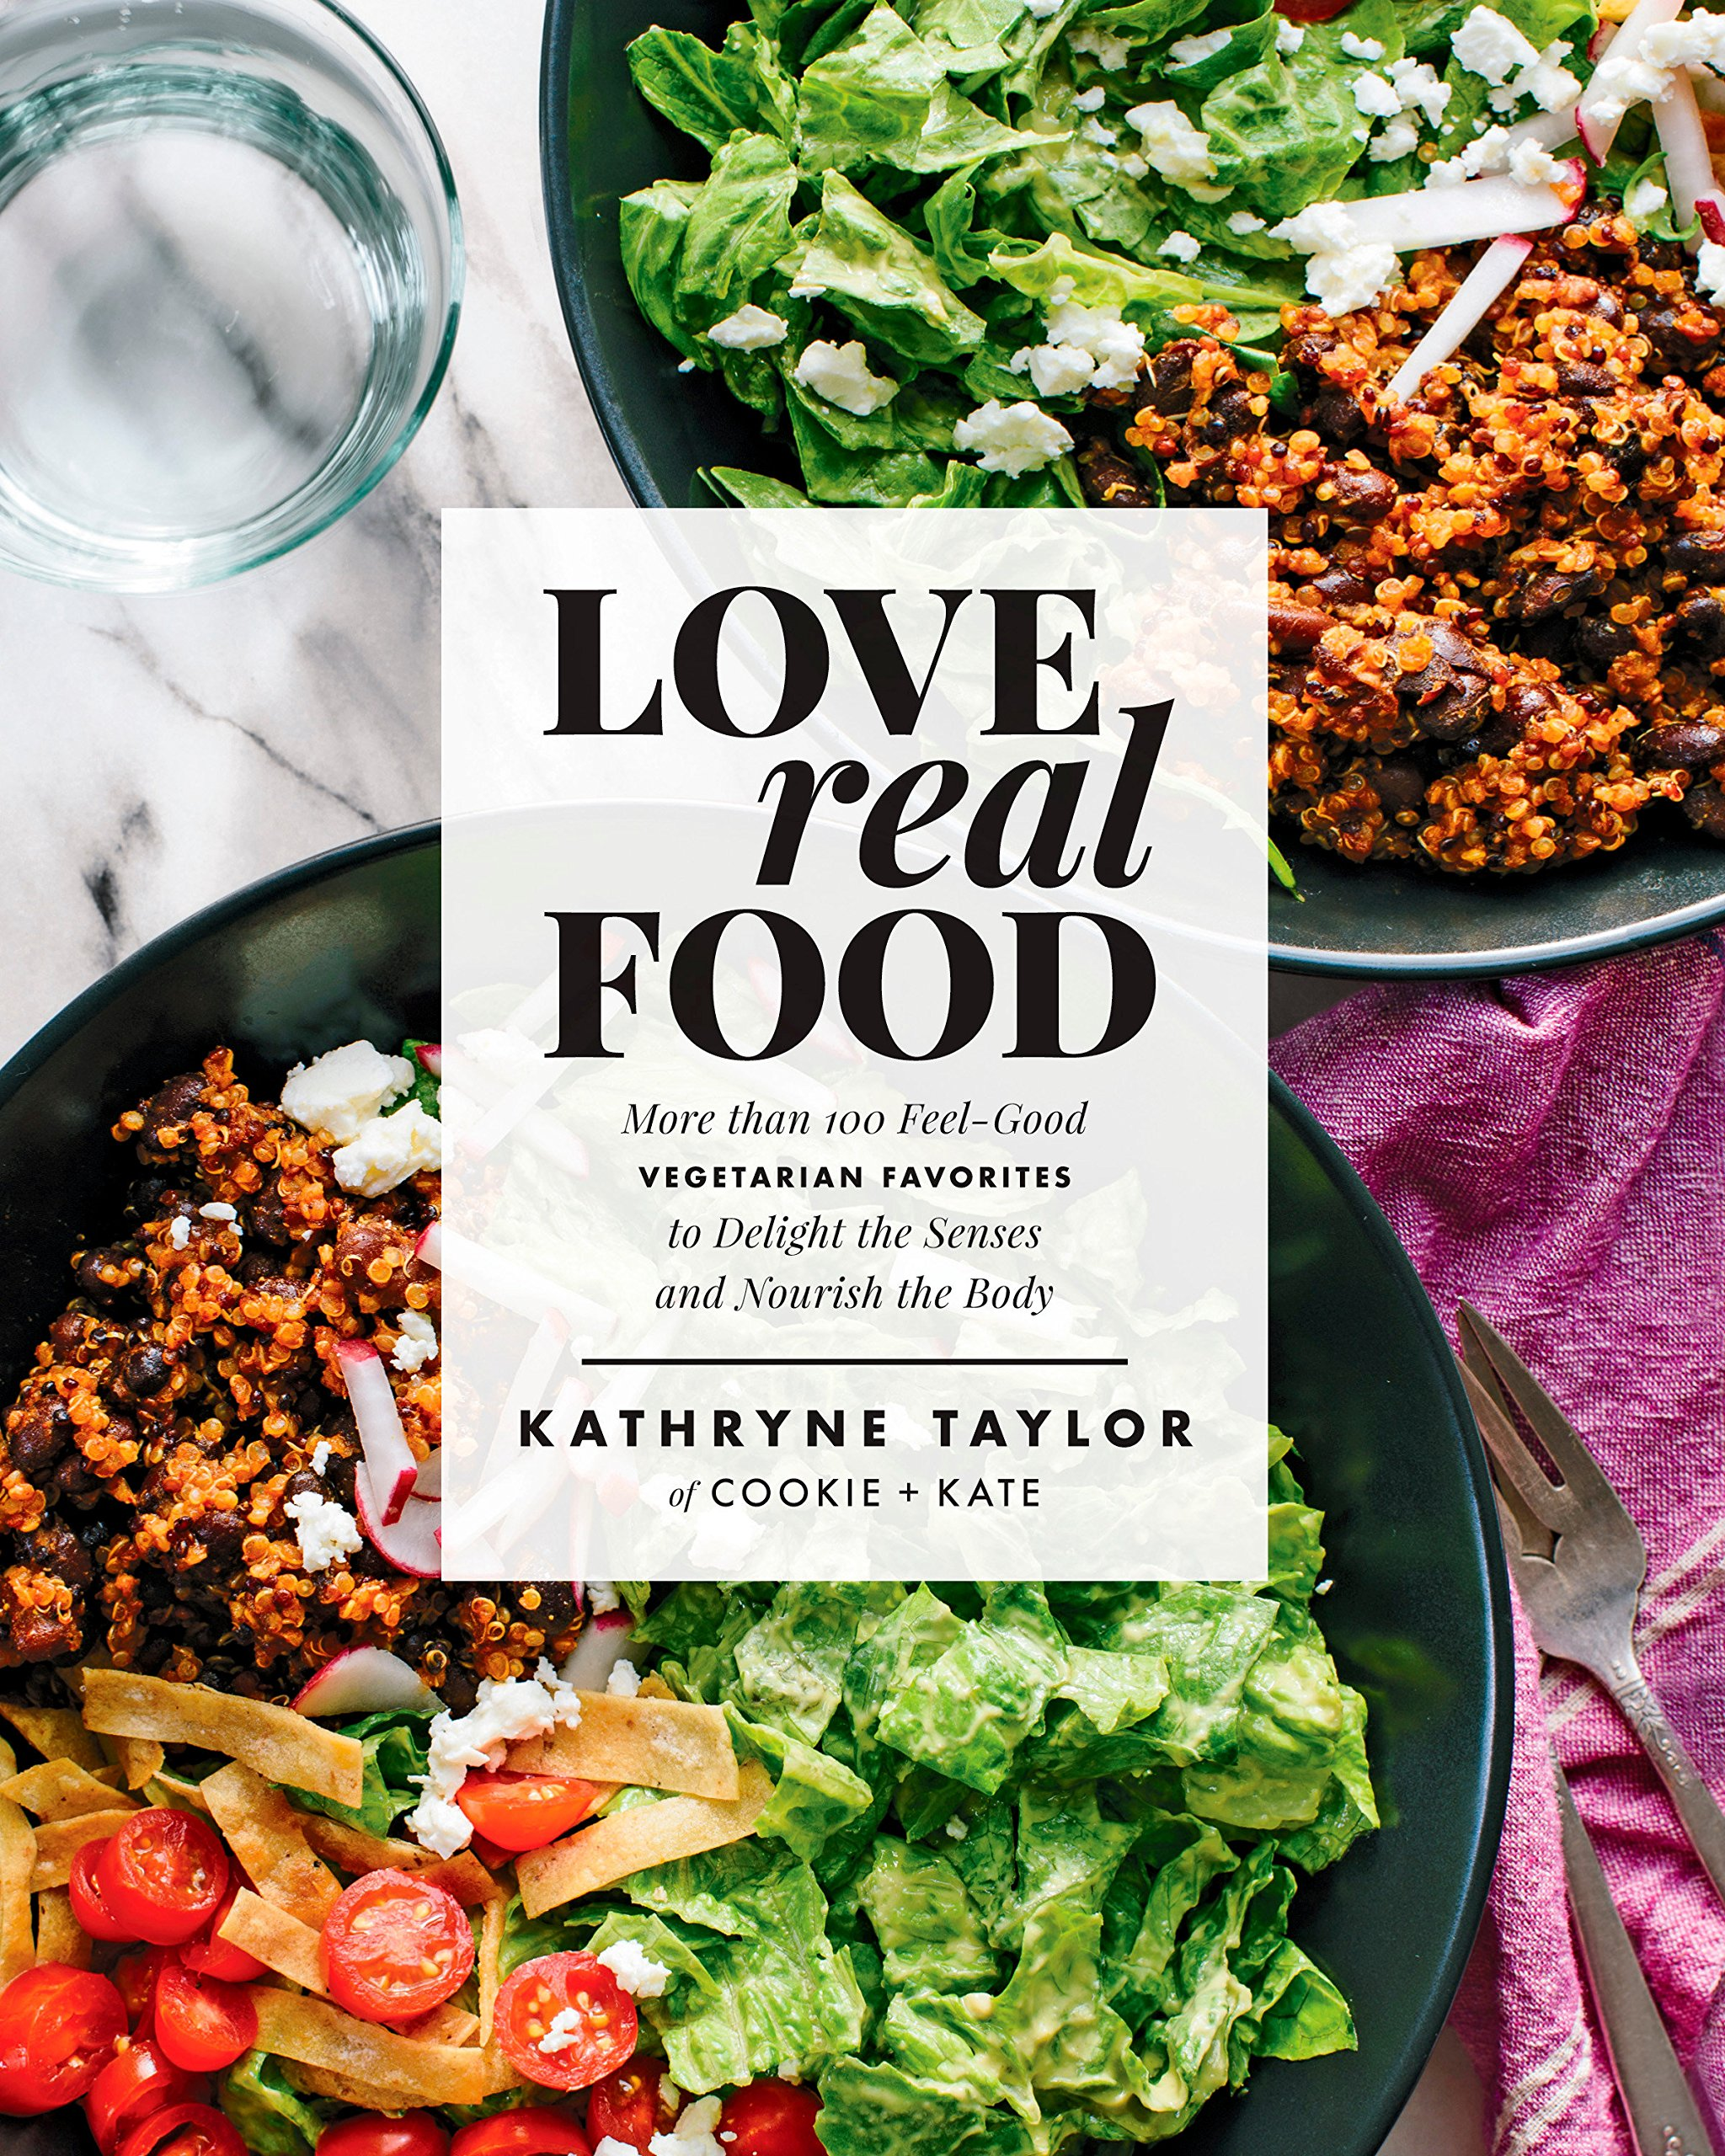 Love Real Food: More Than 100 Feel-Good Vegetarian Favorites to Delight the  Senses and Nourish the Body: Kathryne Taylor: 9781623367411: Amazon.com:  Books